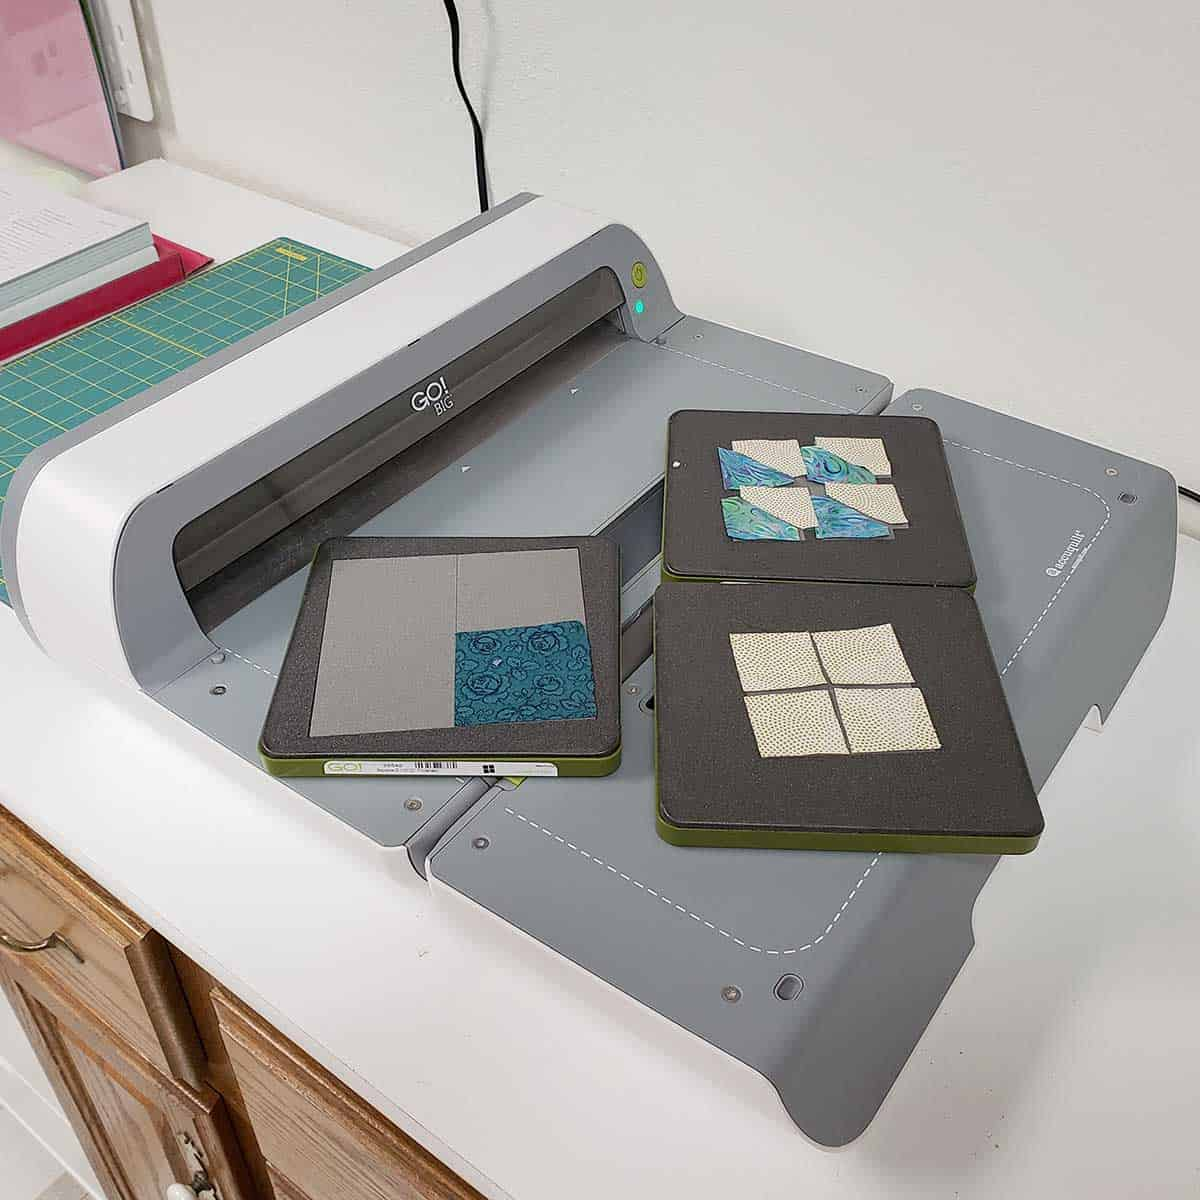 Using the AccuQuilt GO! cutter